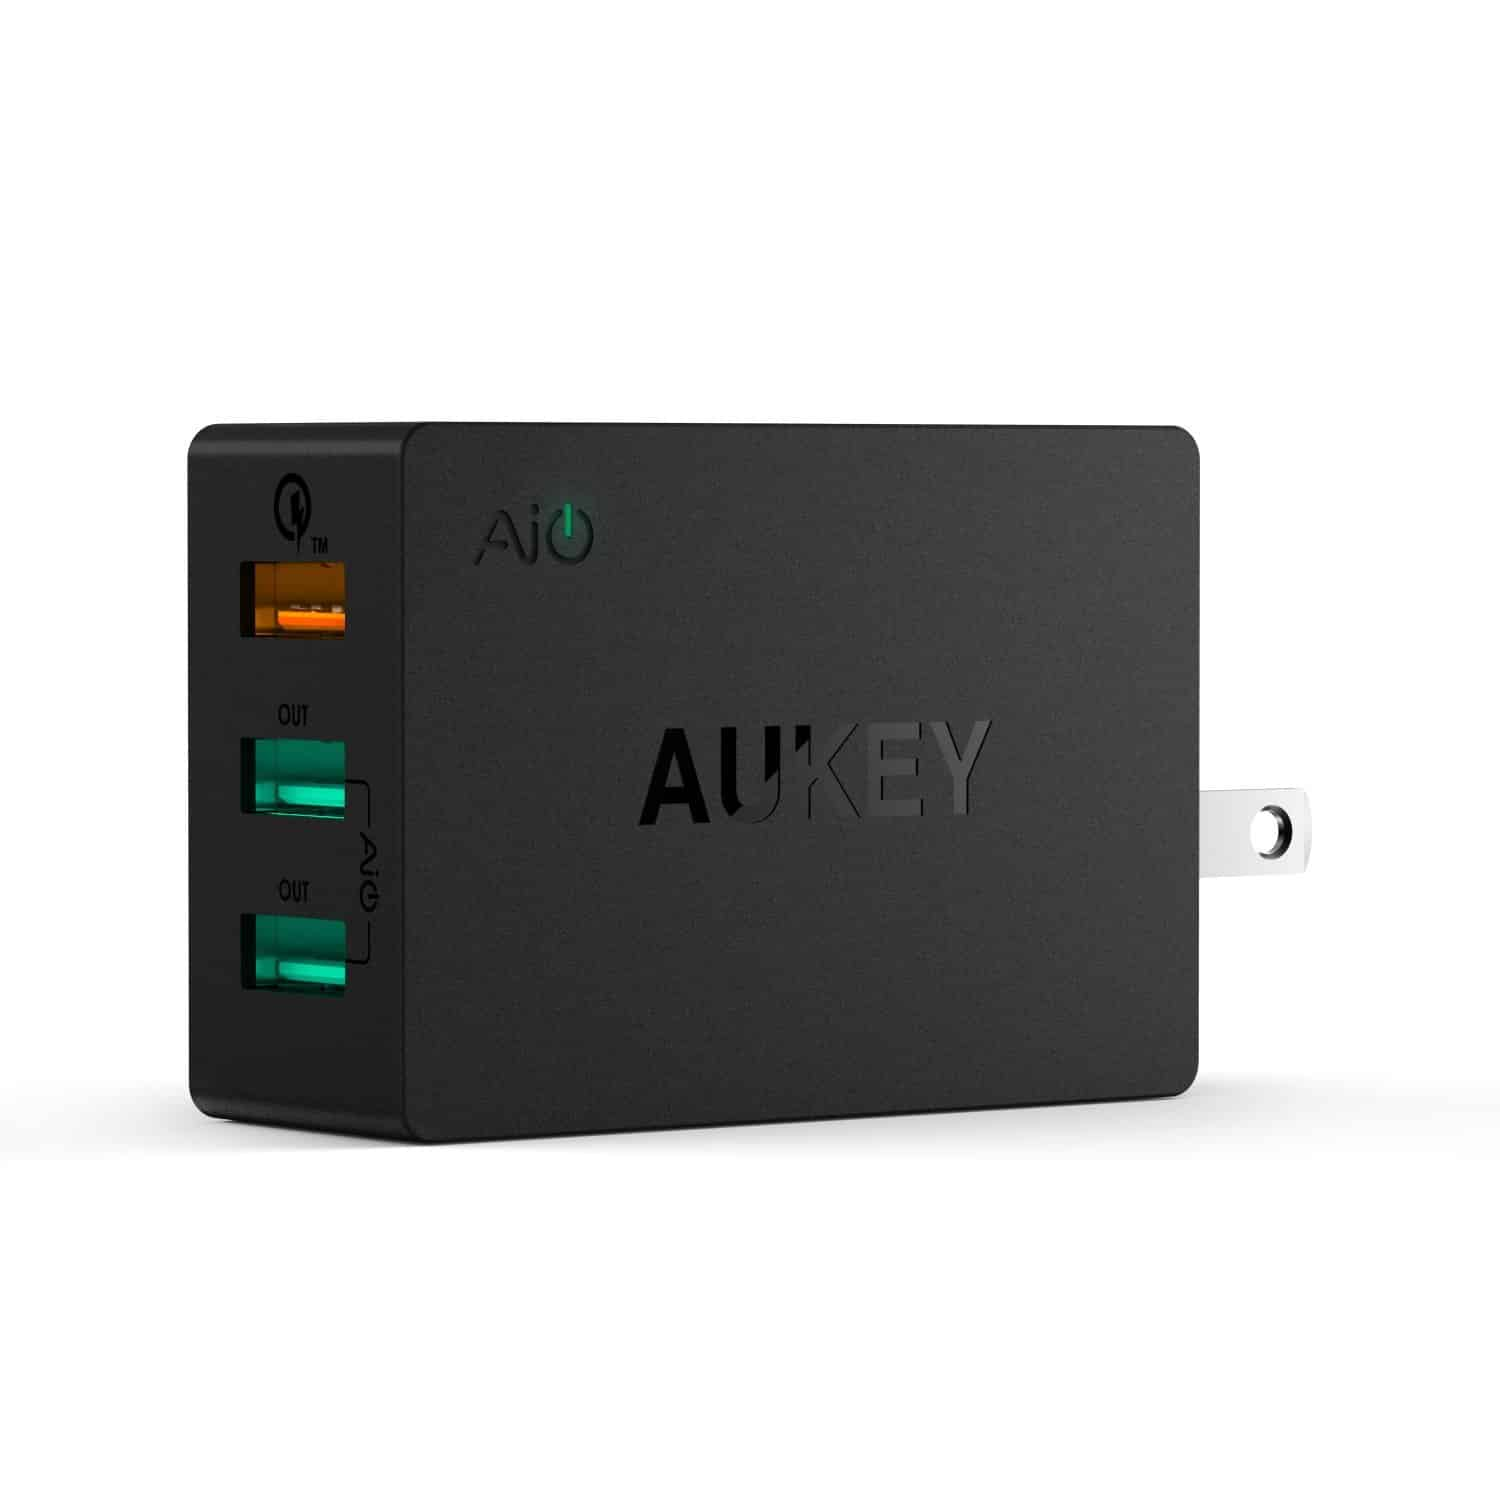 Aukey Quick Charge 2.0 USB Charger